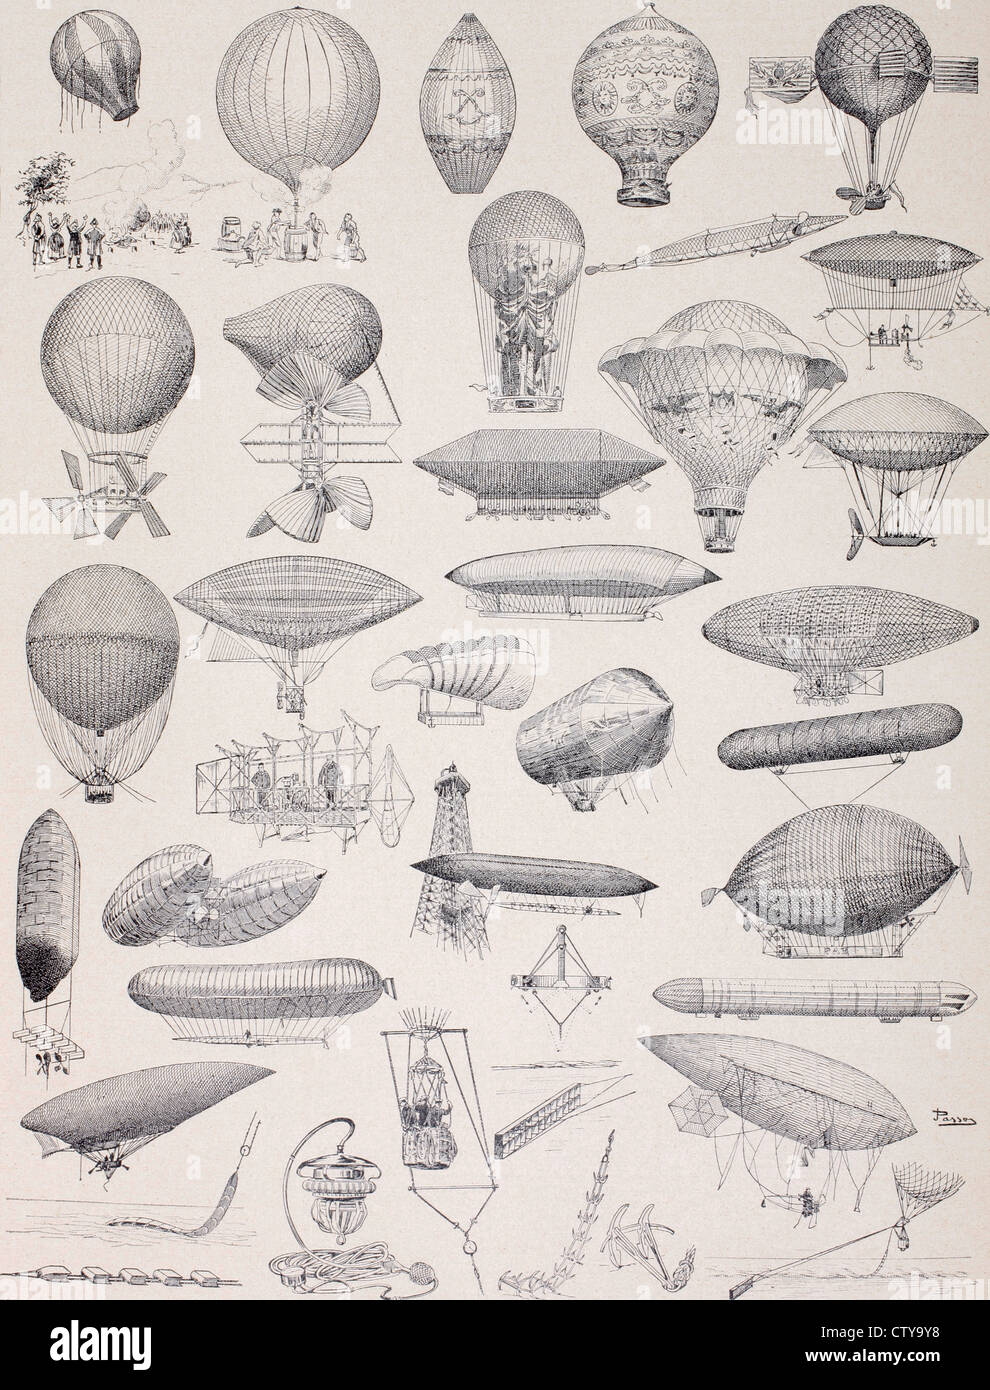 Hot air balloons throughout history.... - Stock Image